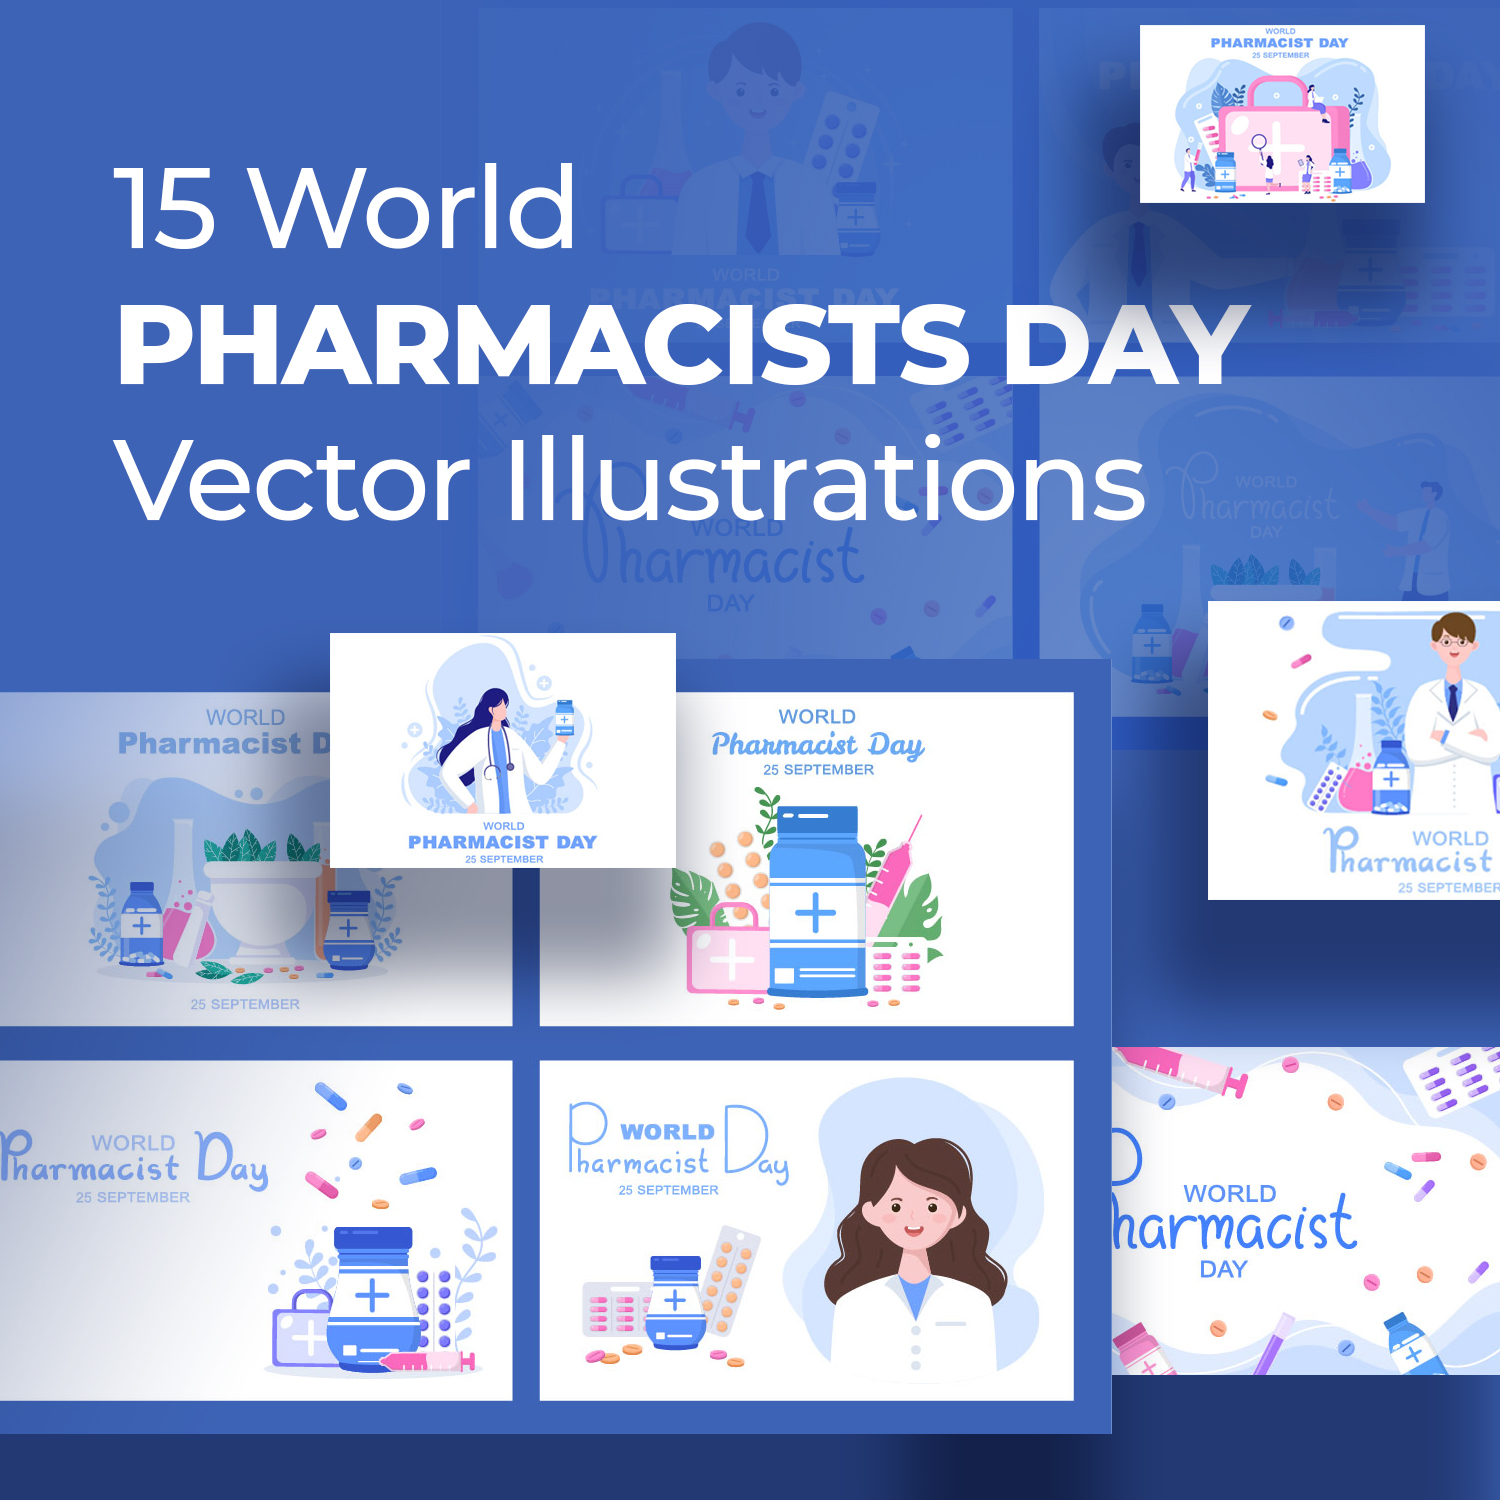 15 World Pharmacists Day Vector Illustrations preview image.